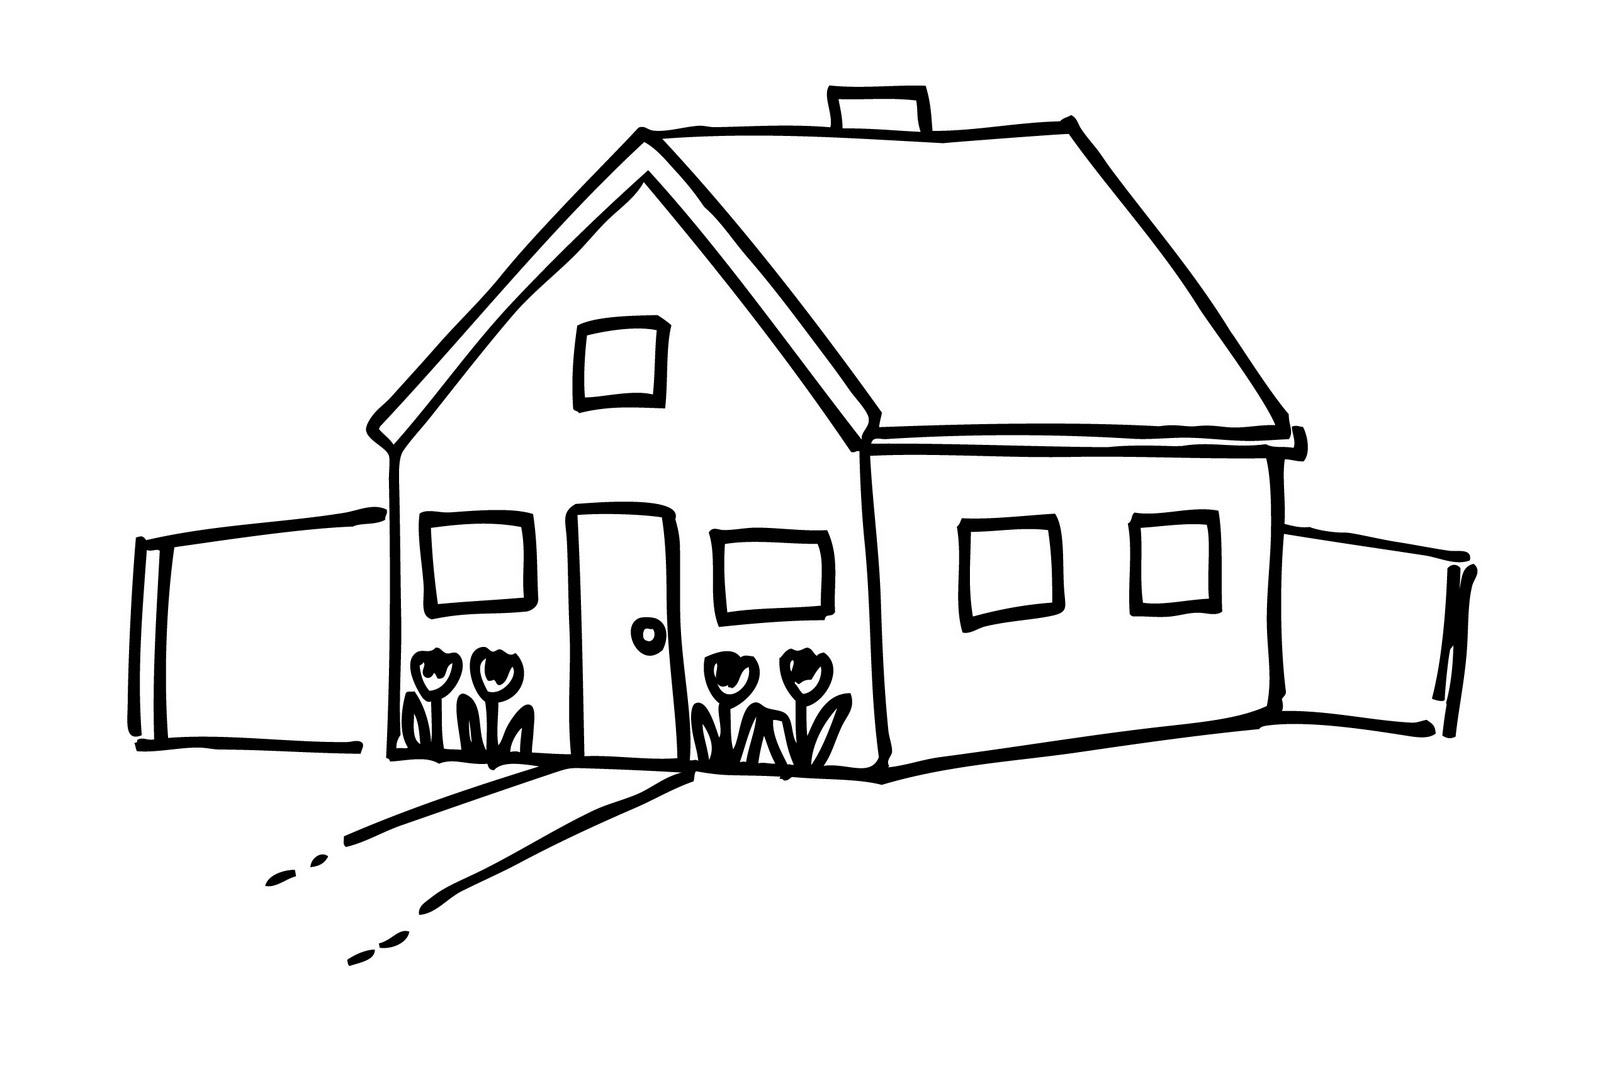 House black and white house clipart black and white 5